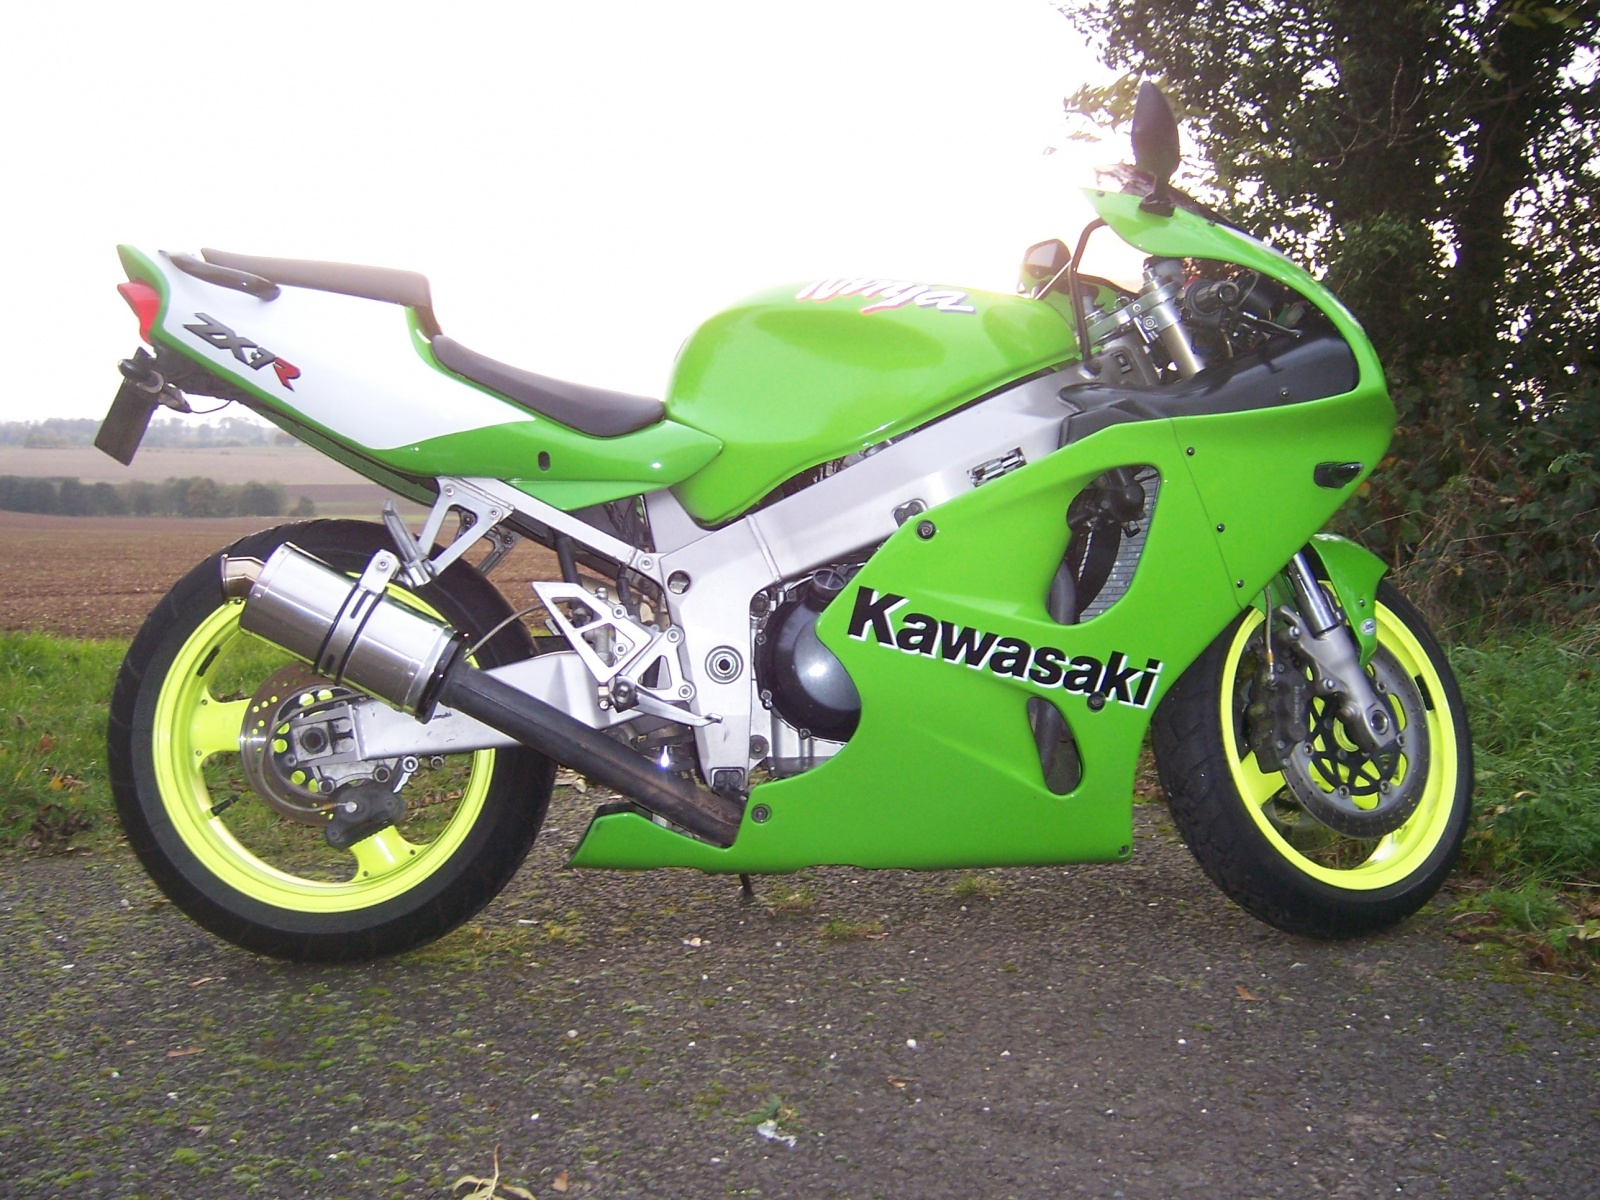 """Kawasaki ZX7R 1996-2003 <p>A16 Stubby Stainless Exhaust with Polished Traditional Spout</p><br><a href=""""https://a16roadnracesupplies.co.uk/product/a16-kawasaki-exhausts/"""">Click here to Spec your A16 Kawasaki Exhaust now!</a>"""